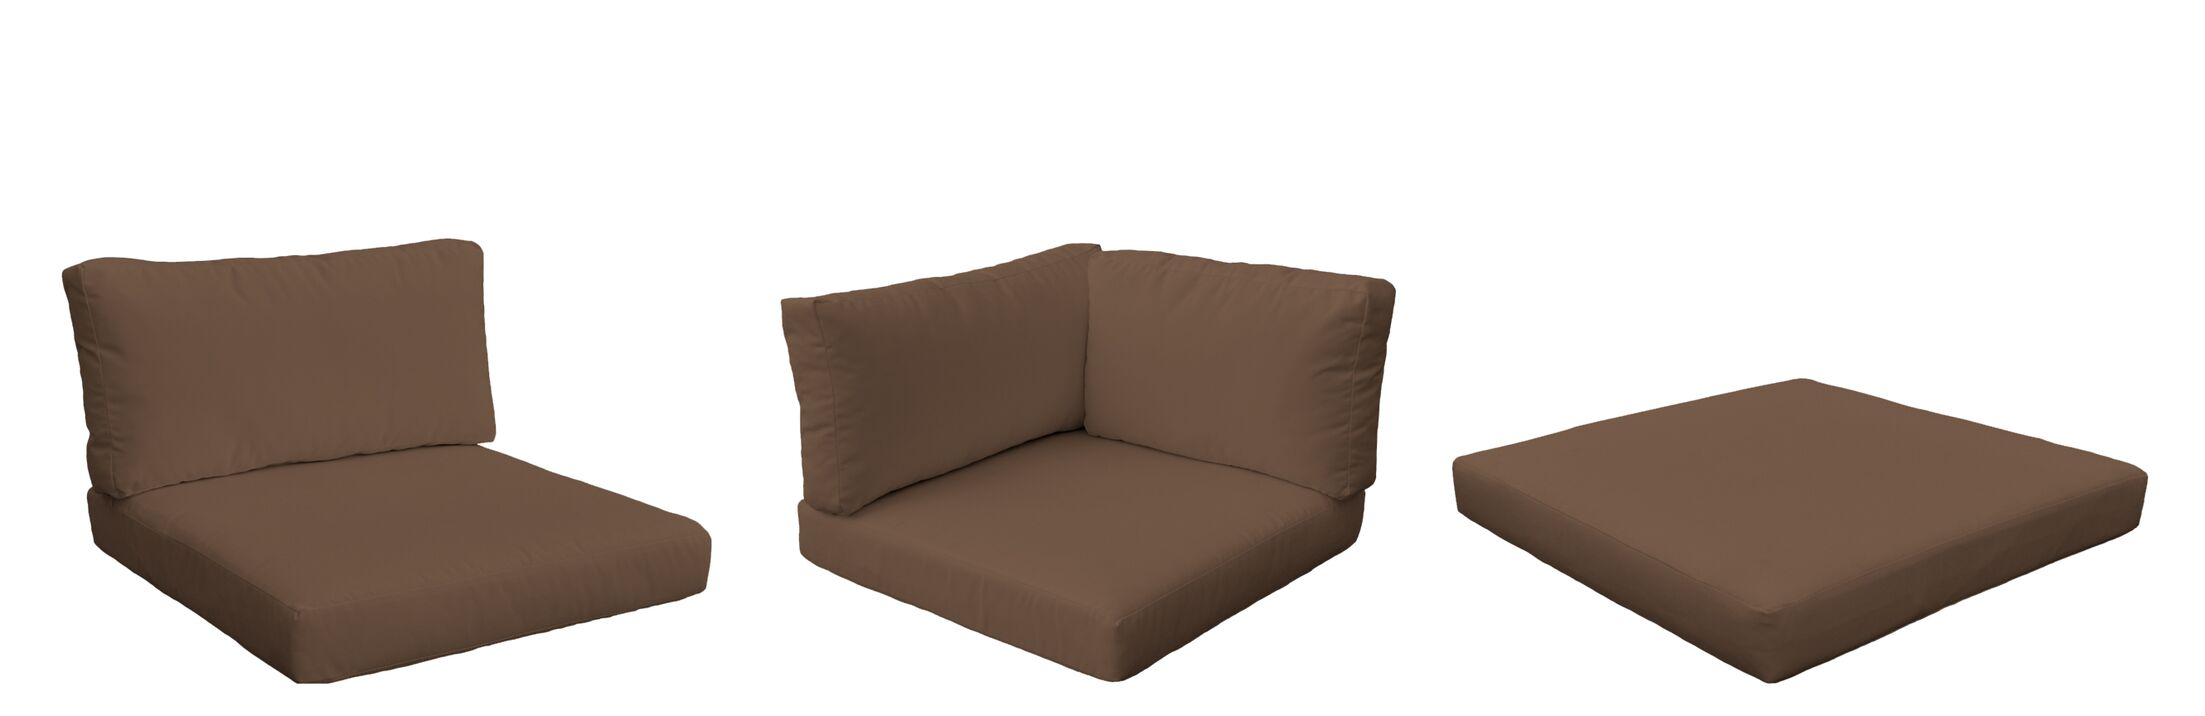 Monterey Outdoor 13 Piece Lounge Chair Cushion Set Fabric: Cocoa